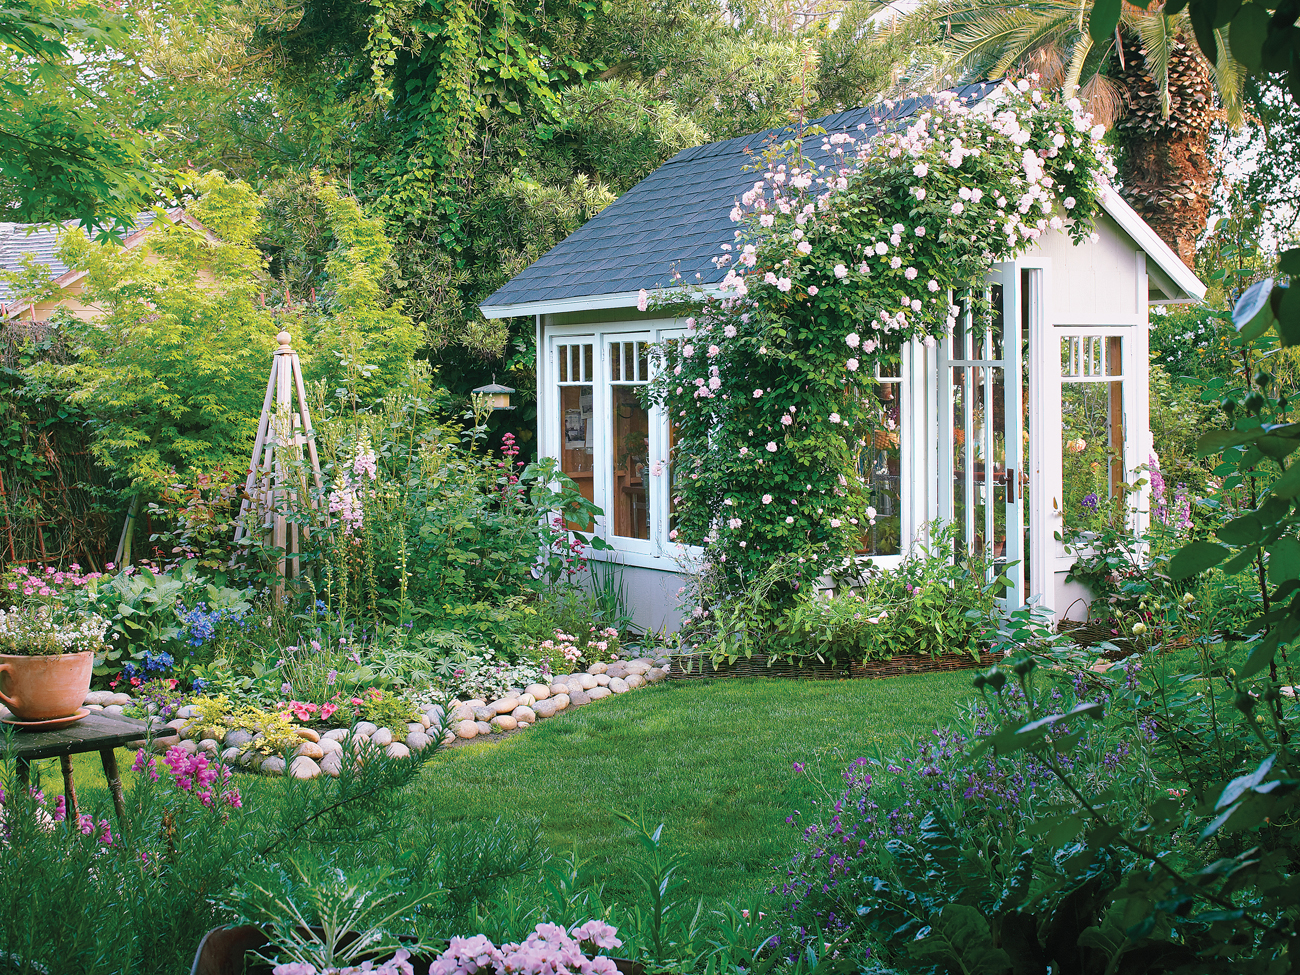 Vibrant green yard with a cottage style shed. The open shed door is welcoming and beautiful flowers grow up the side of the wall tying the shed into the yard.